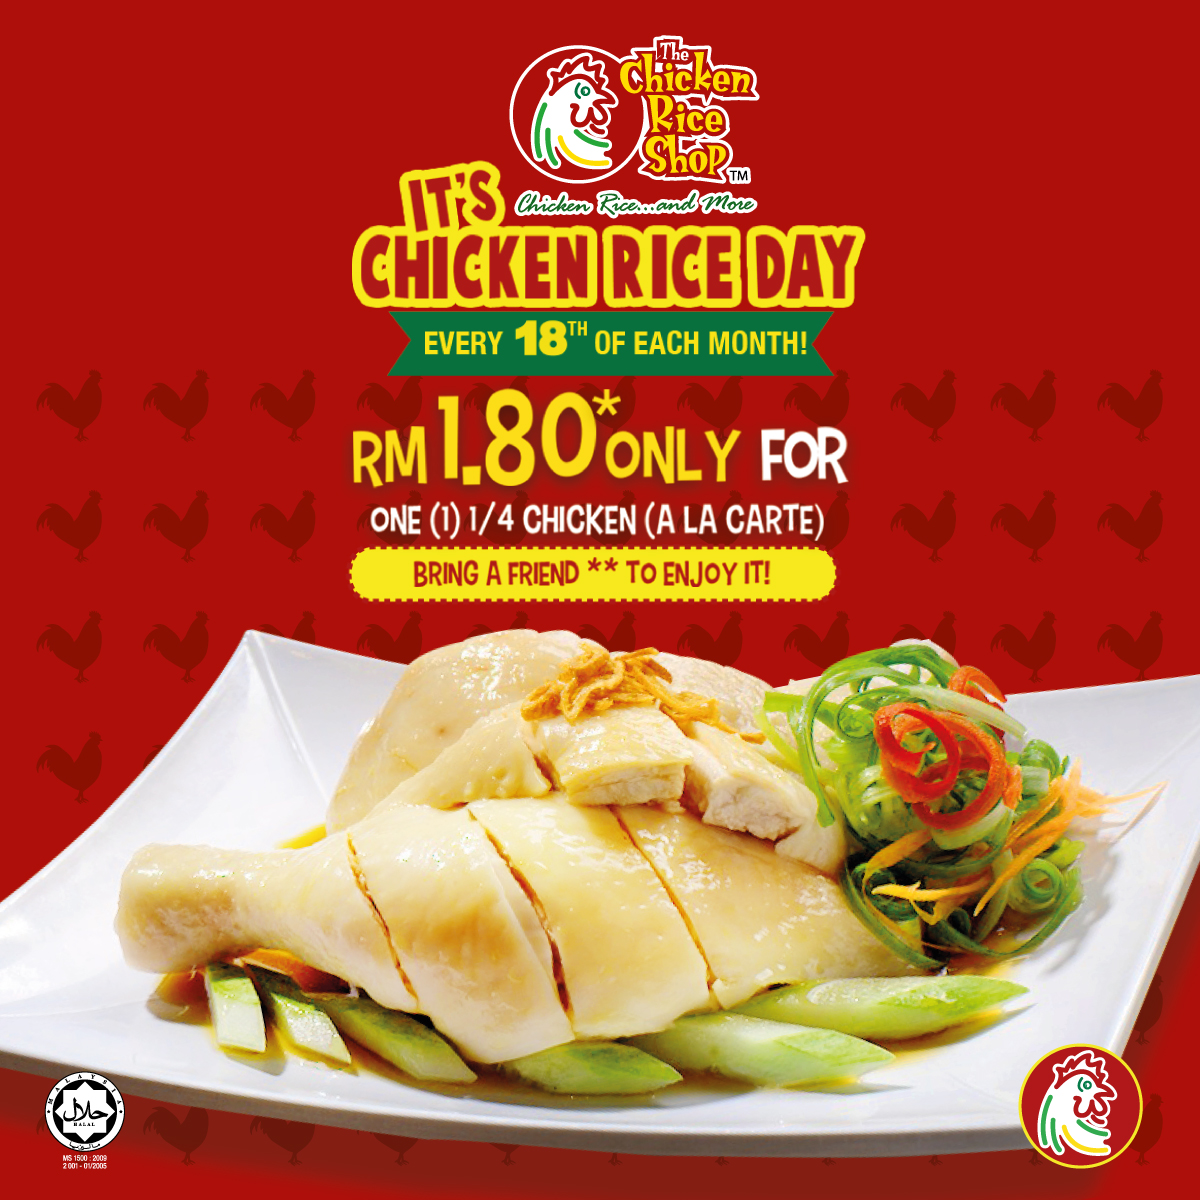 TCRS Chicken Rice Day on 18th Every Month Promotion